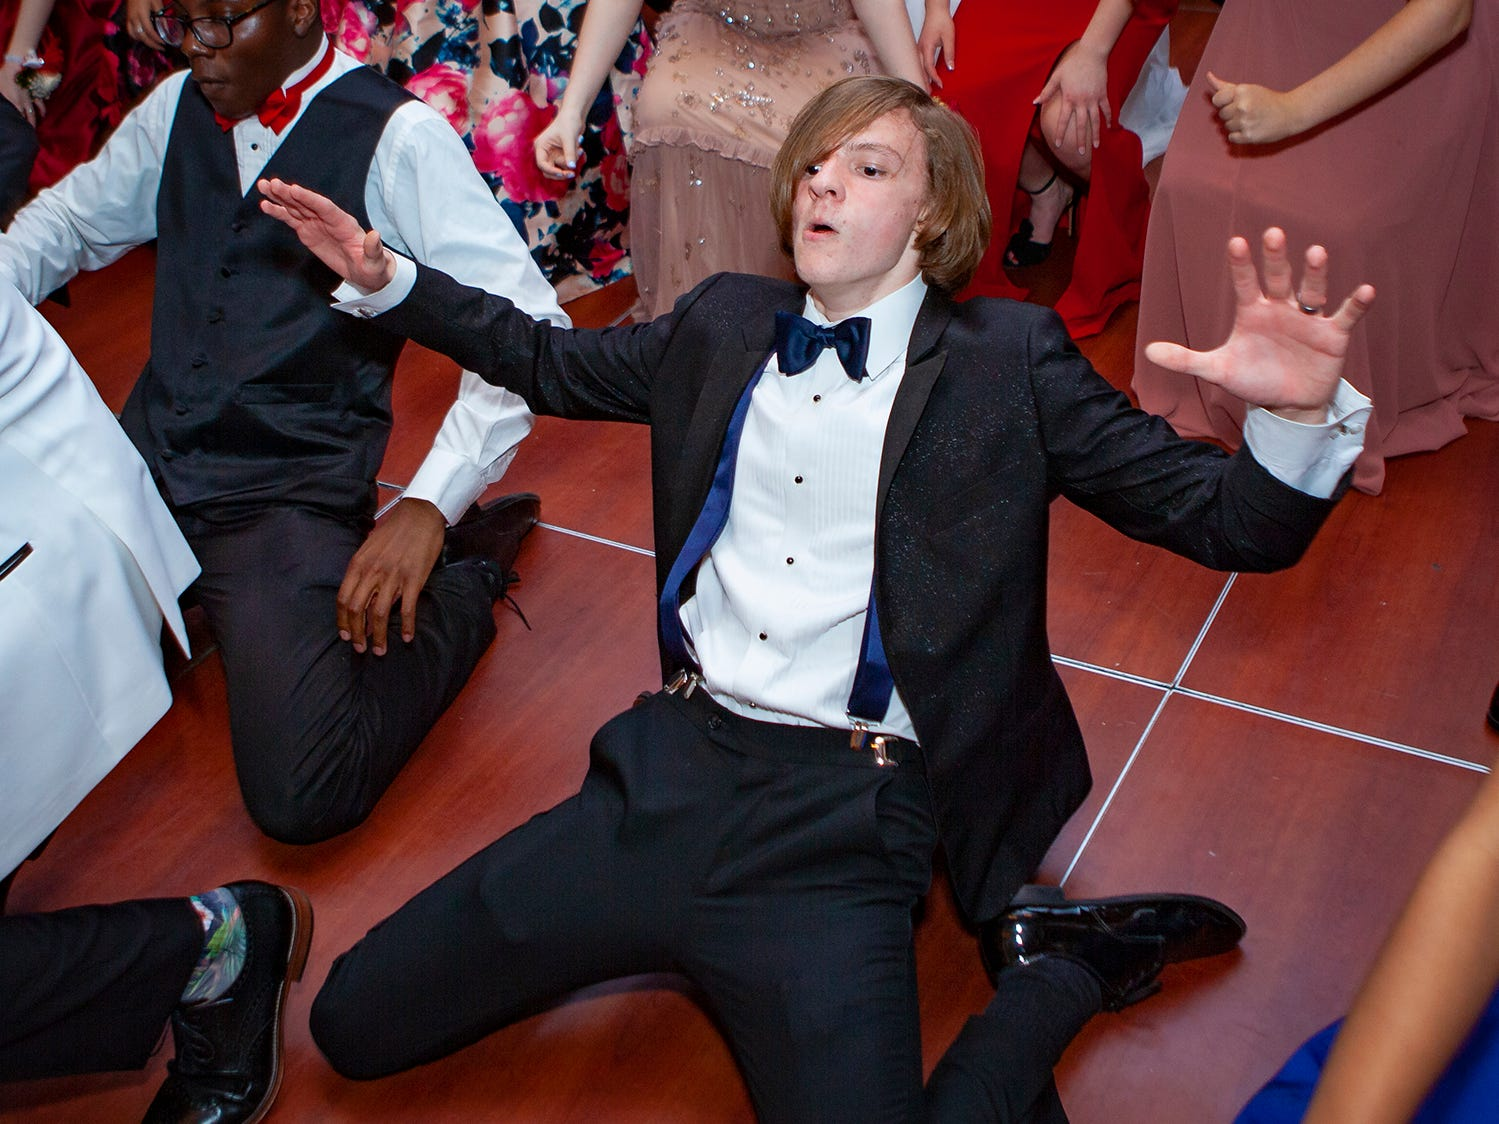 Jacob Alexander and his classmates get low to the floor during Central Magnet School's prom Saturday, April 6, 2019 at Embassy Suites in Murfreesboro.